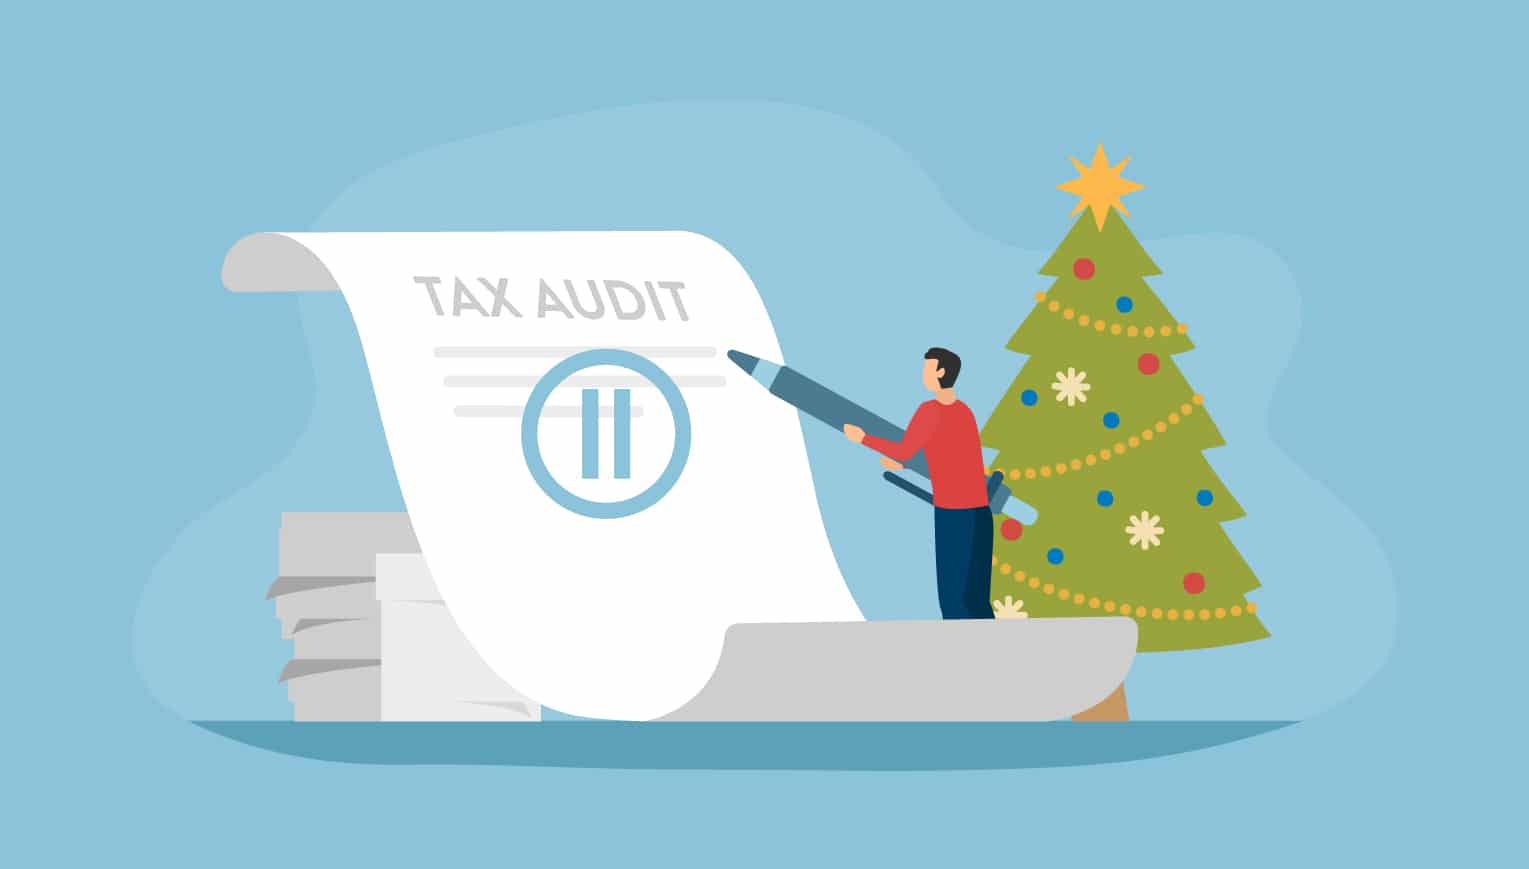 BIR Tax Audits In The Philippines – Suspended Over Christmas And New Years!